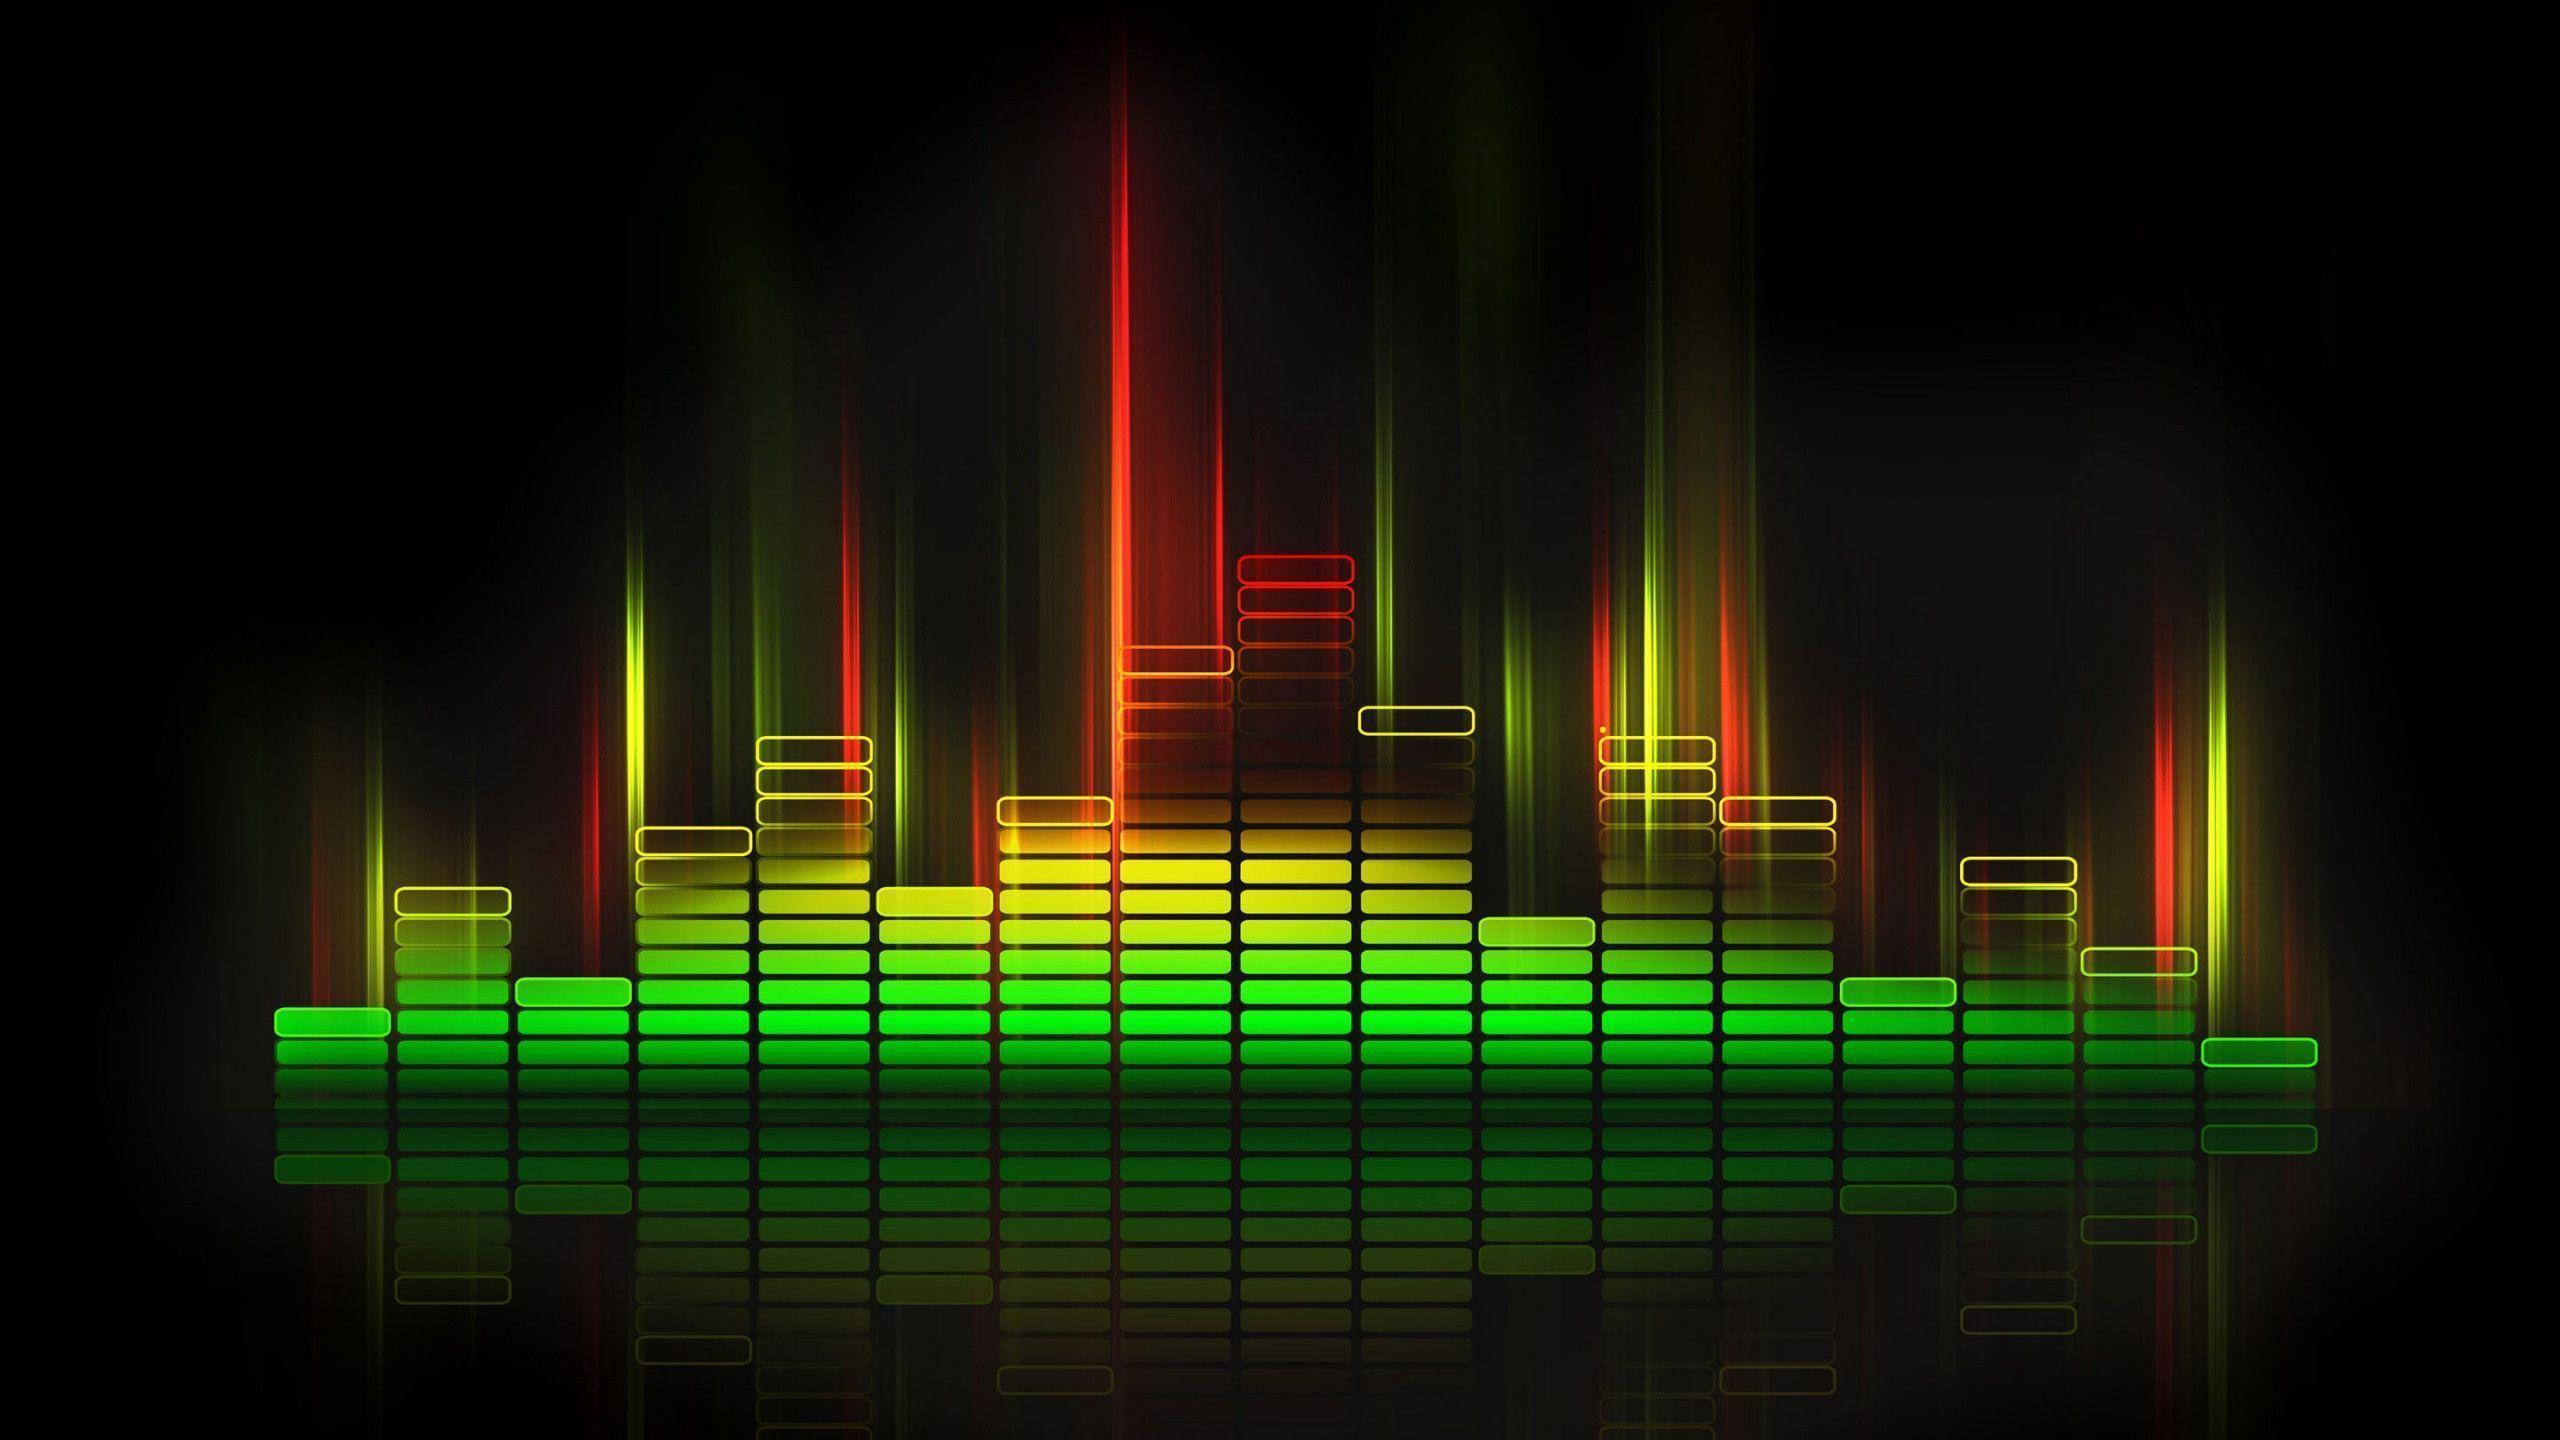 Sound Wave Wallpapers 2560x1440